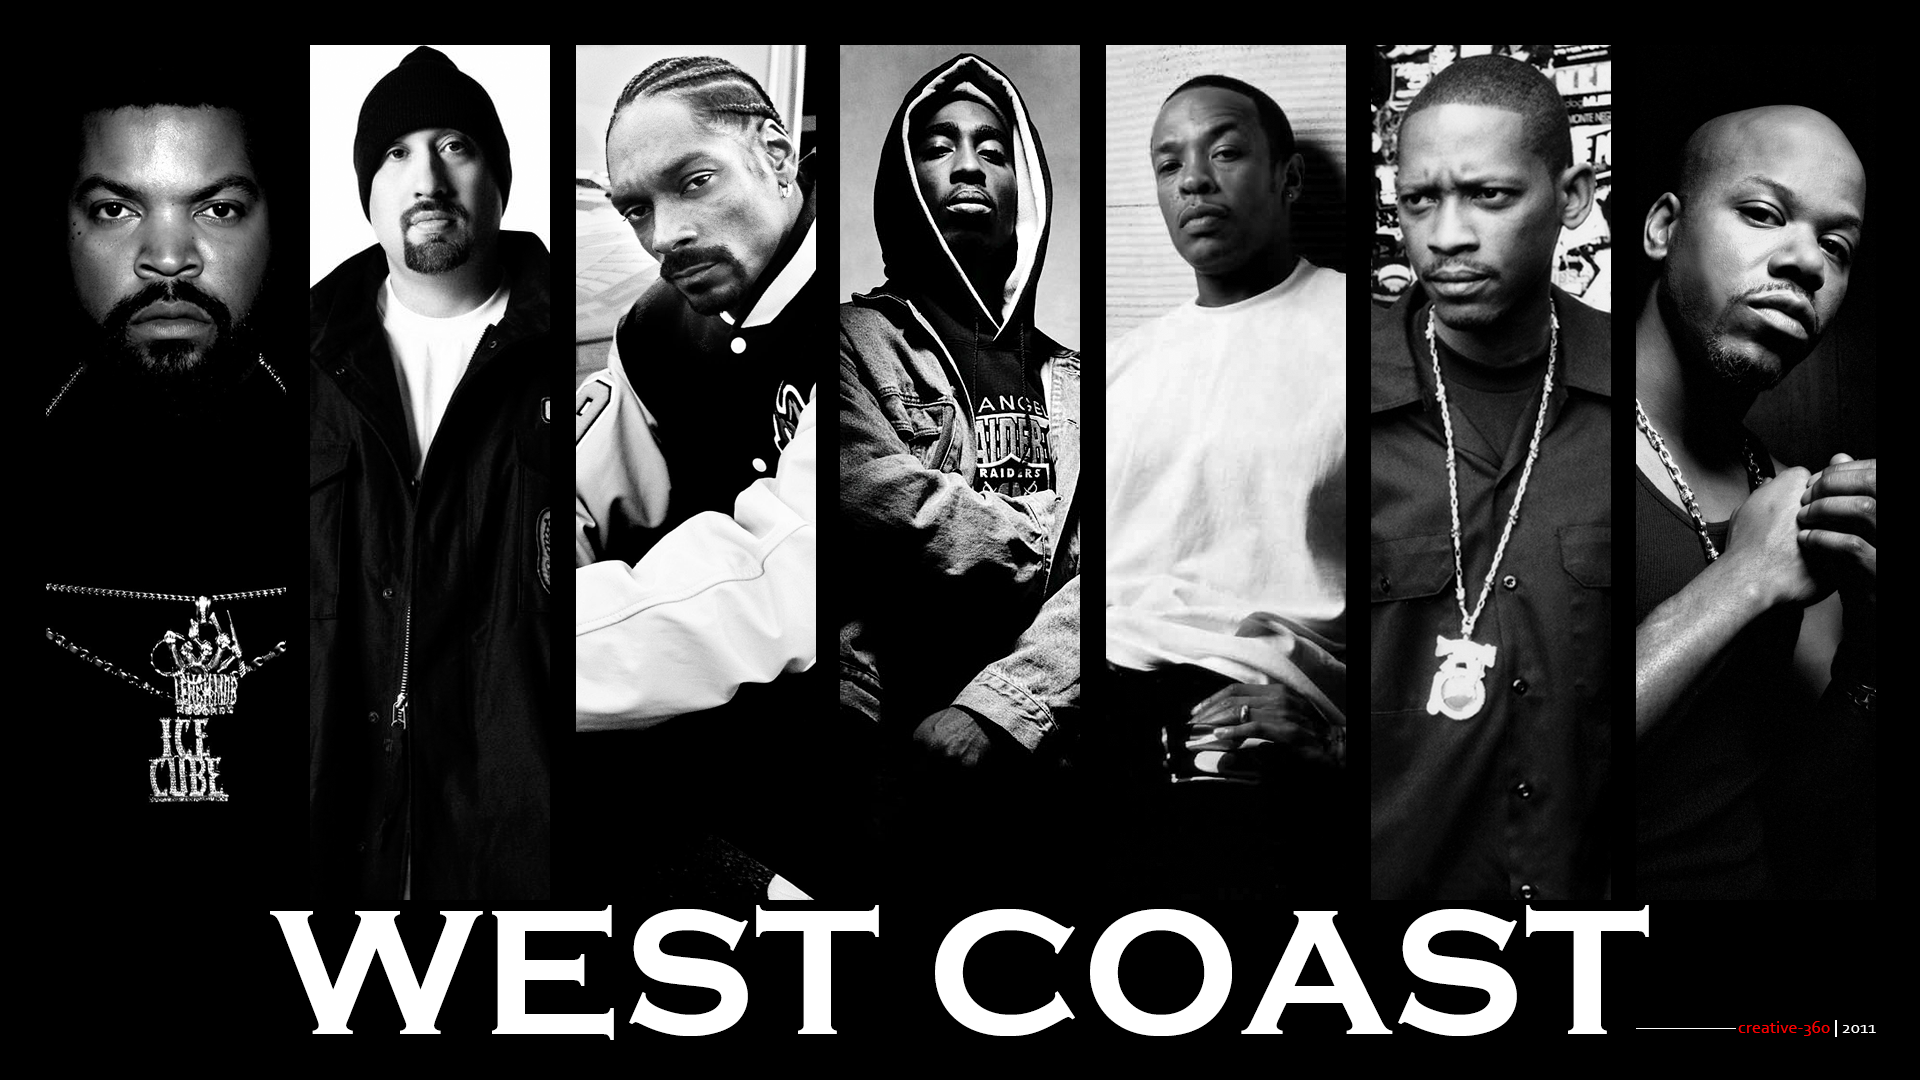 West Coast Wallpaper